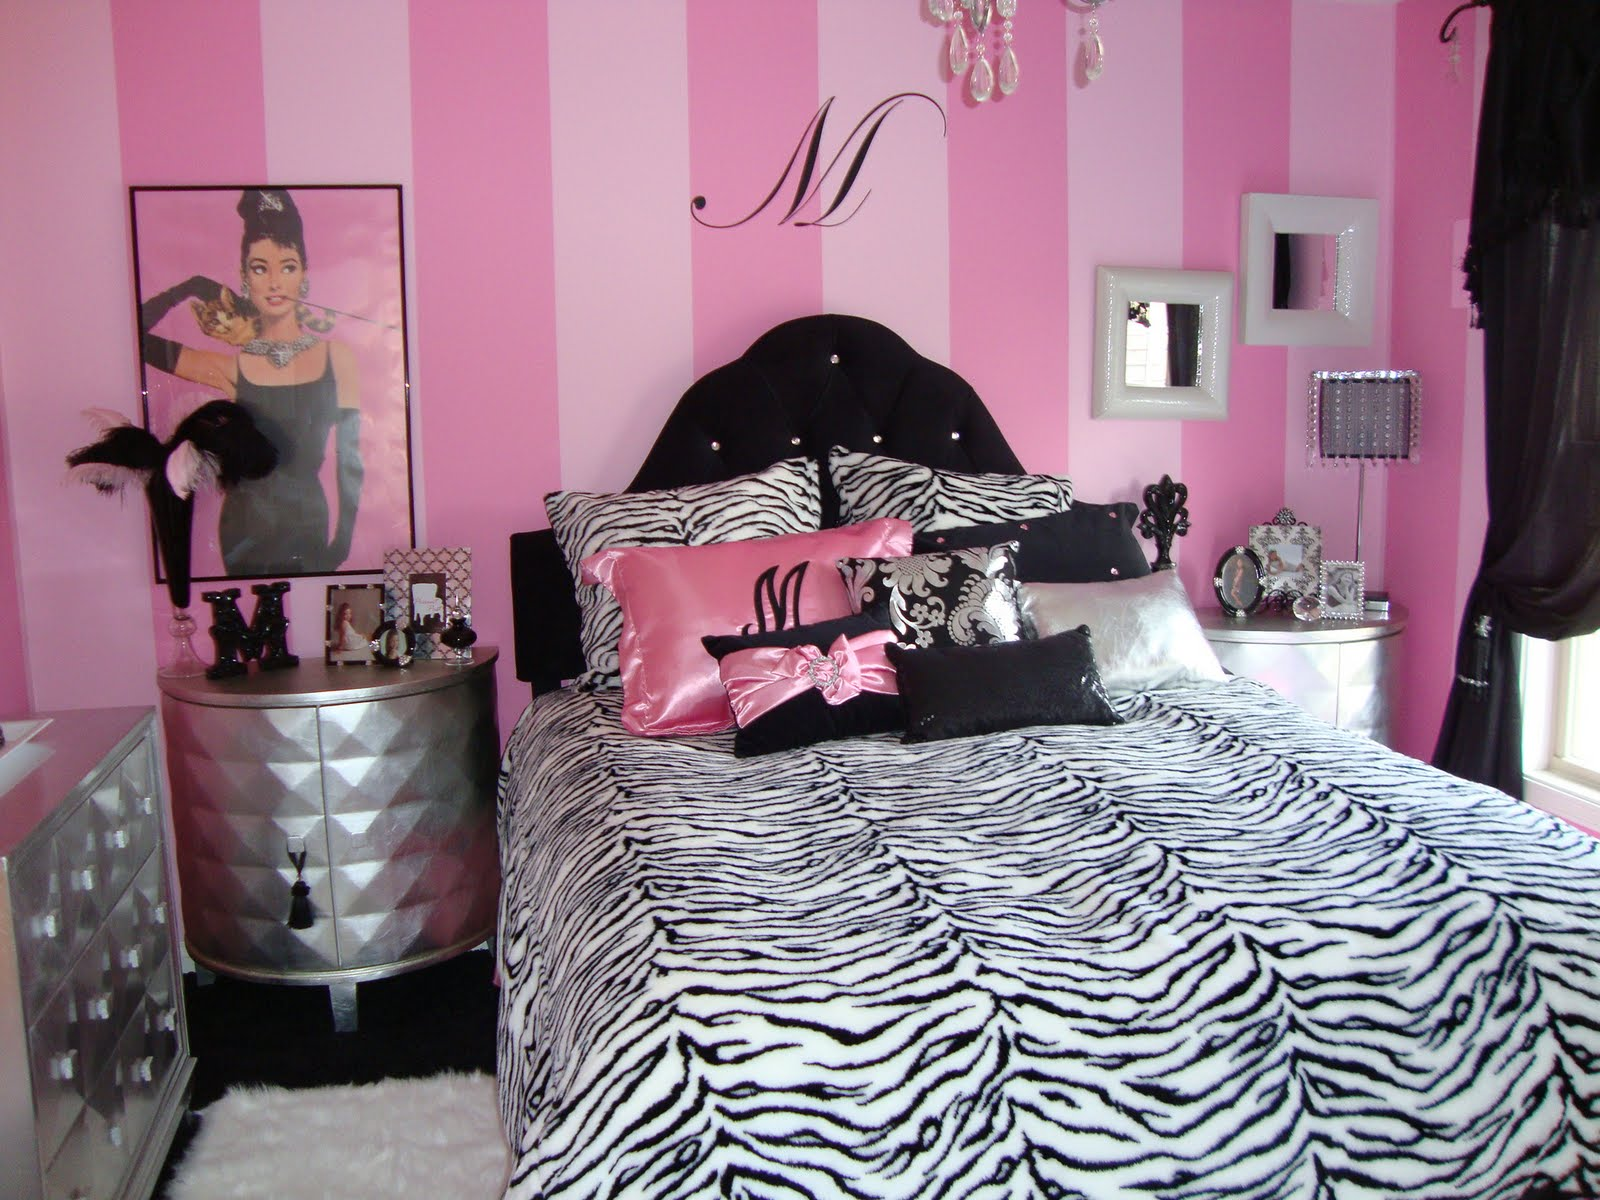 Pink And Black Wallpaper For Bedroom Pink And Black Decor 21 Free Hd Wallpaper Hdblackwallpapercom